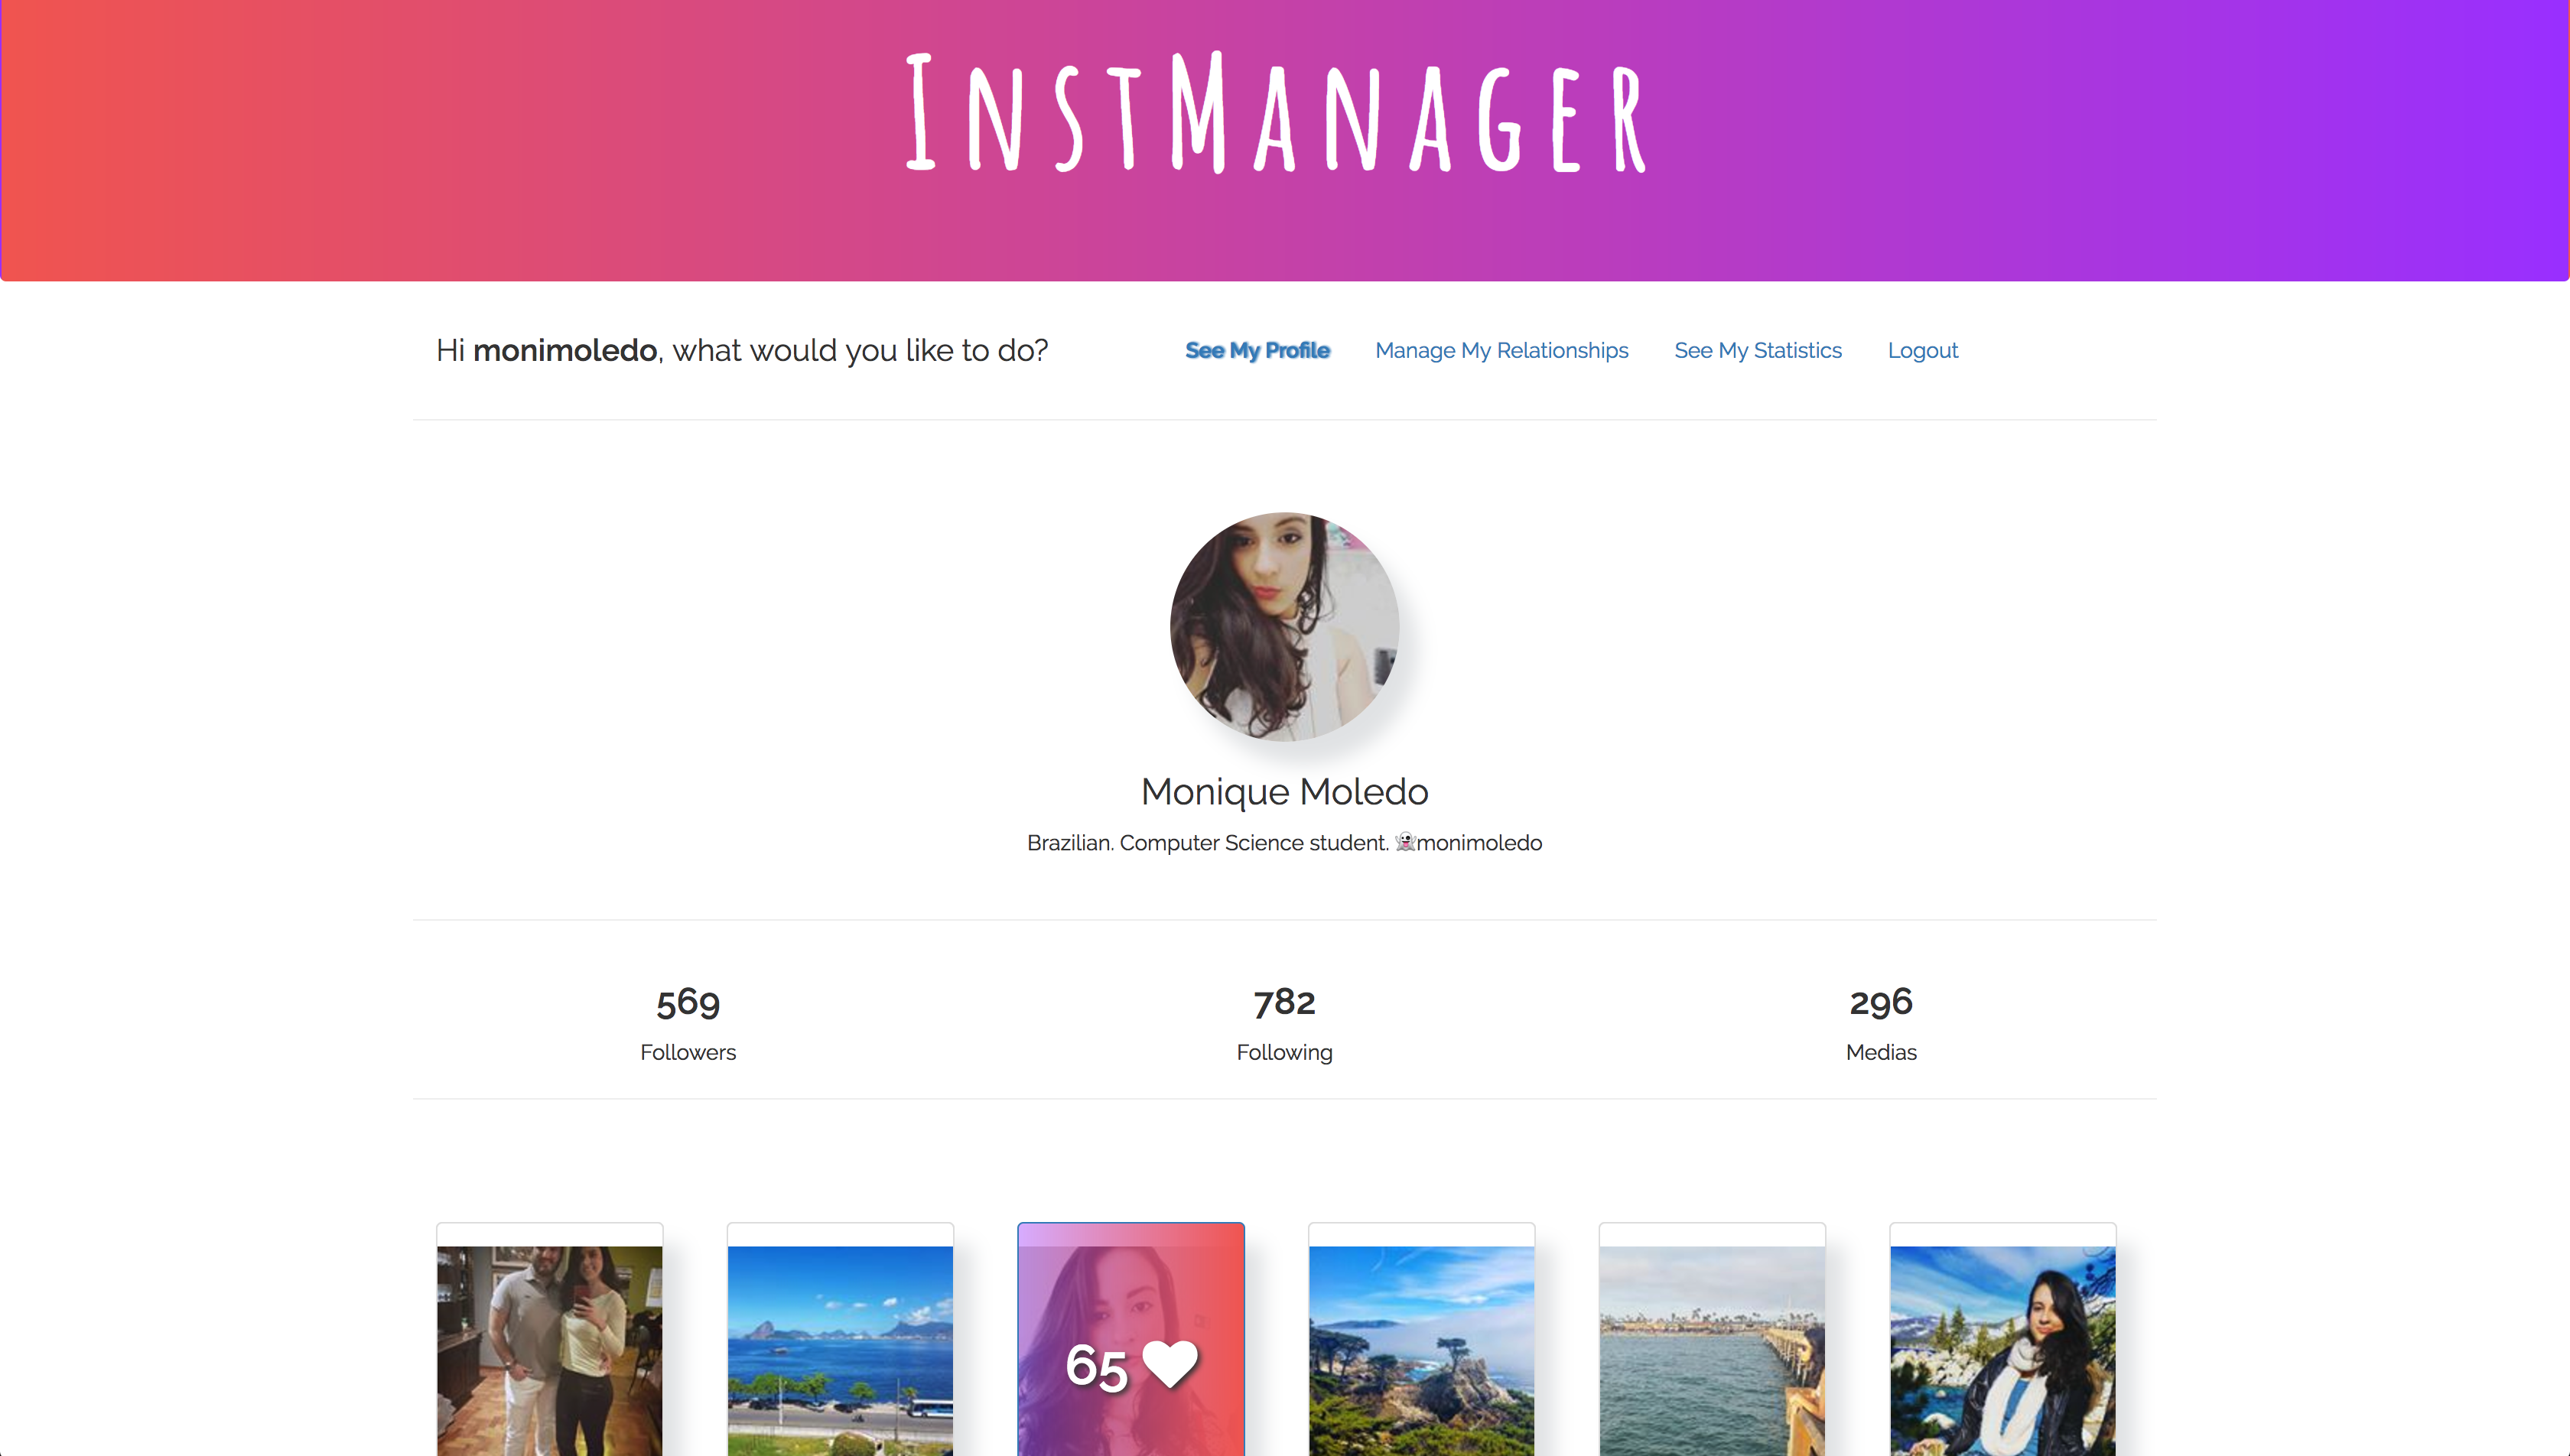 InstManager is an Instagram client built in Nodejs, Expressjs, Mongodb, Angularjs, and other technologies.